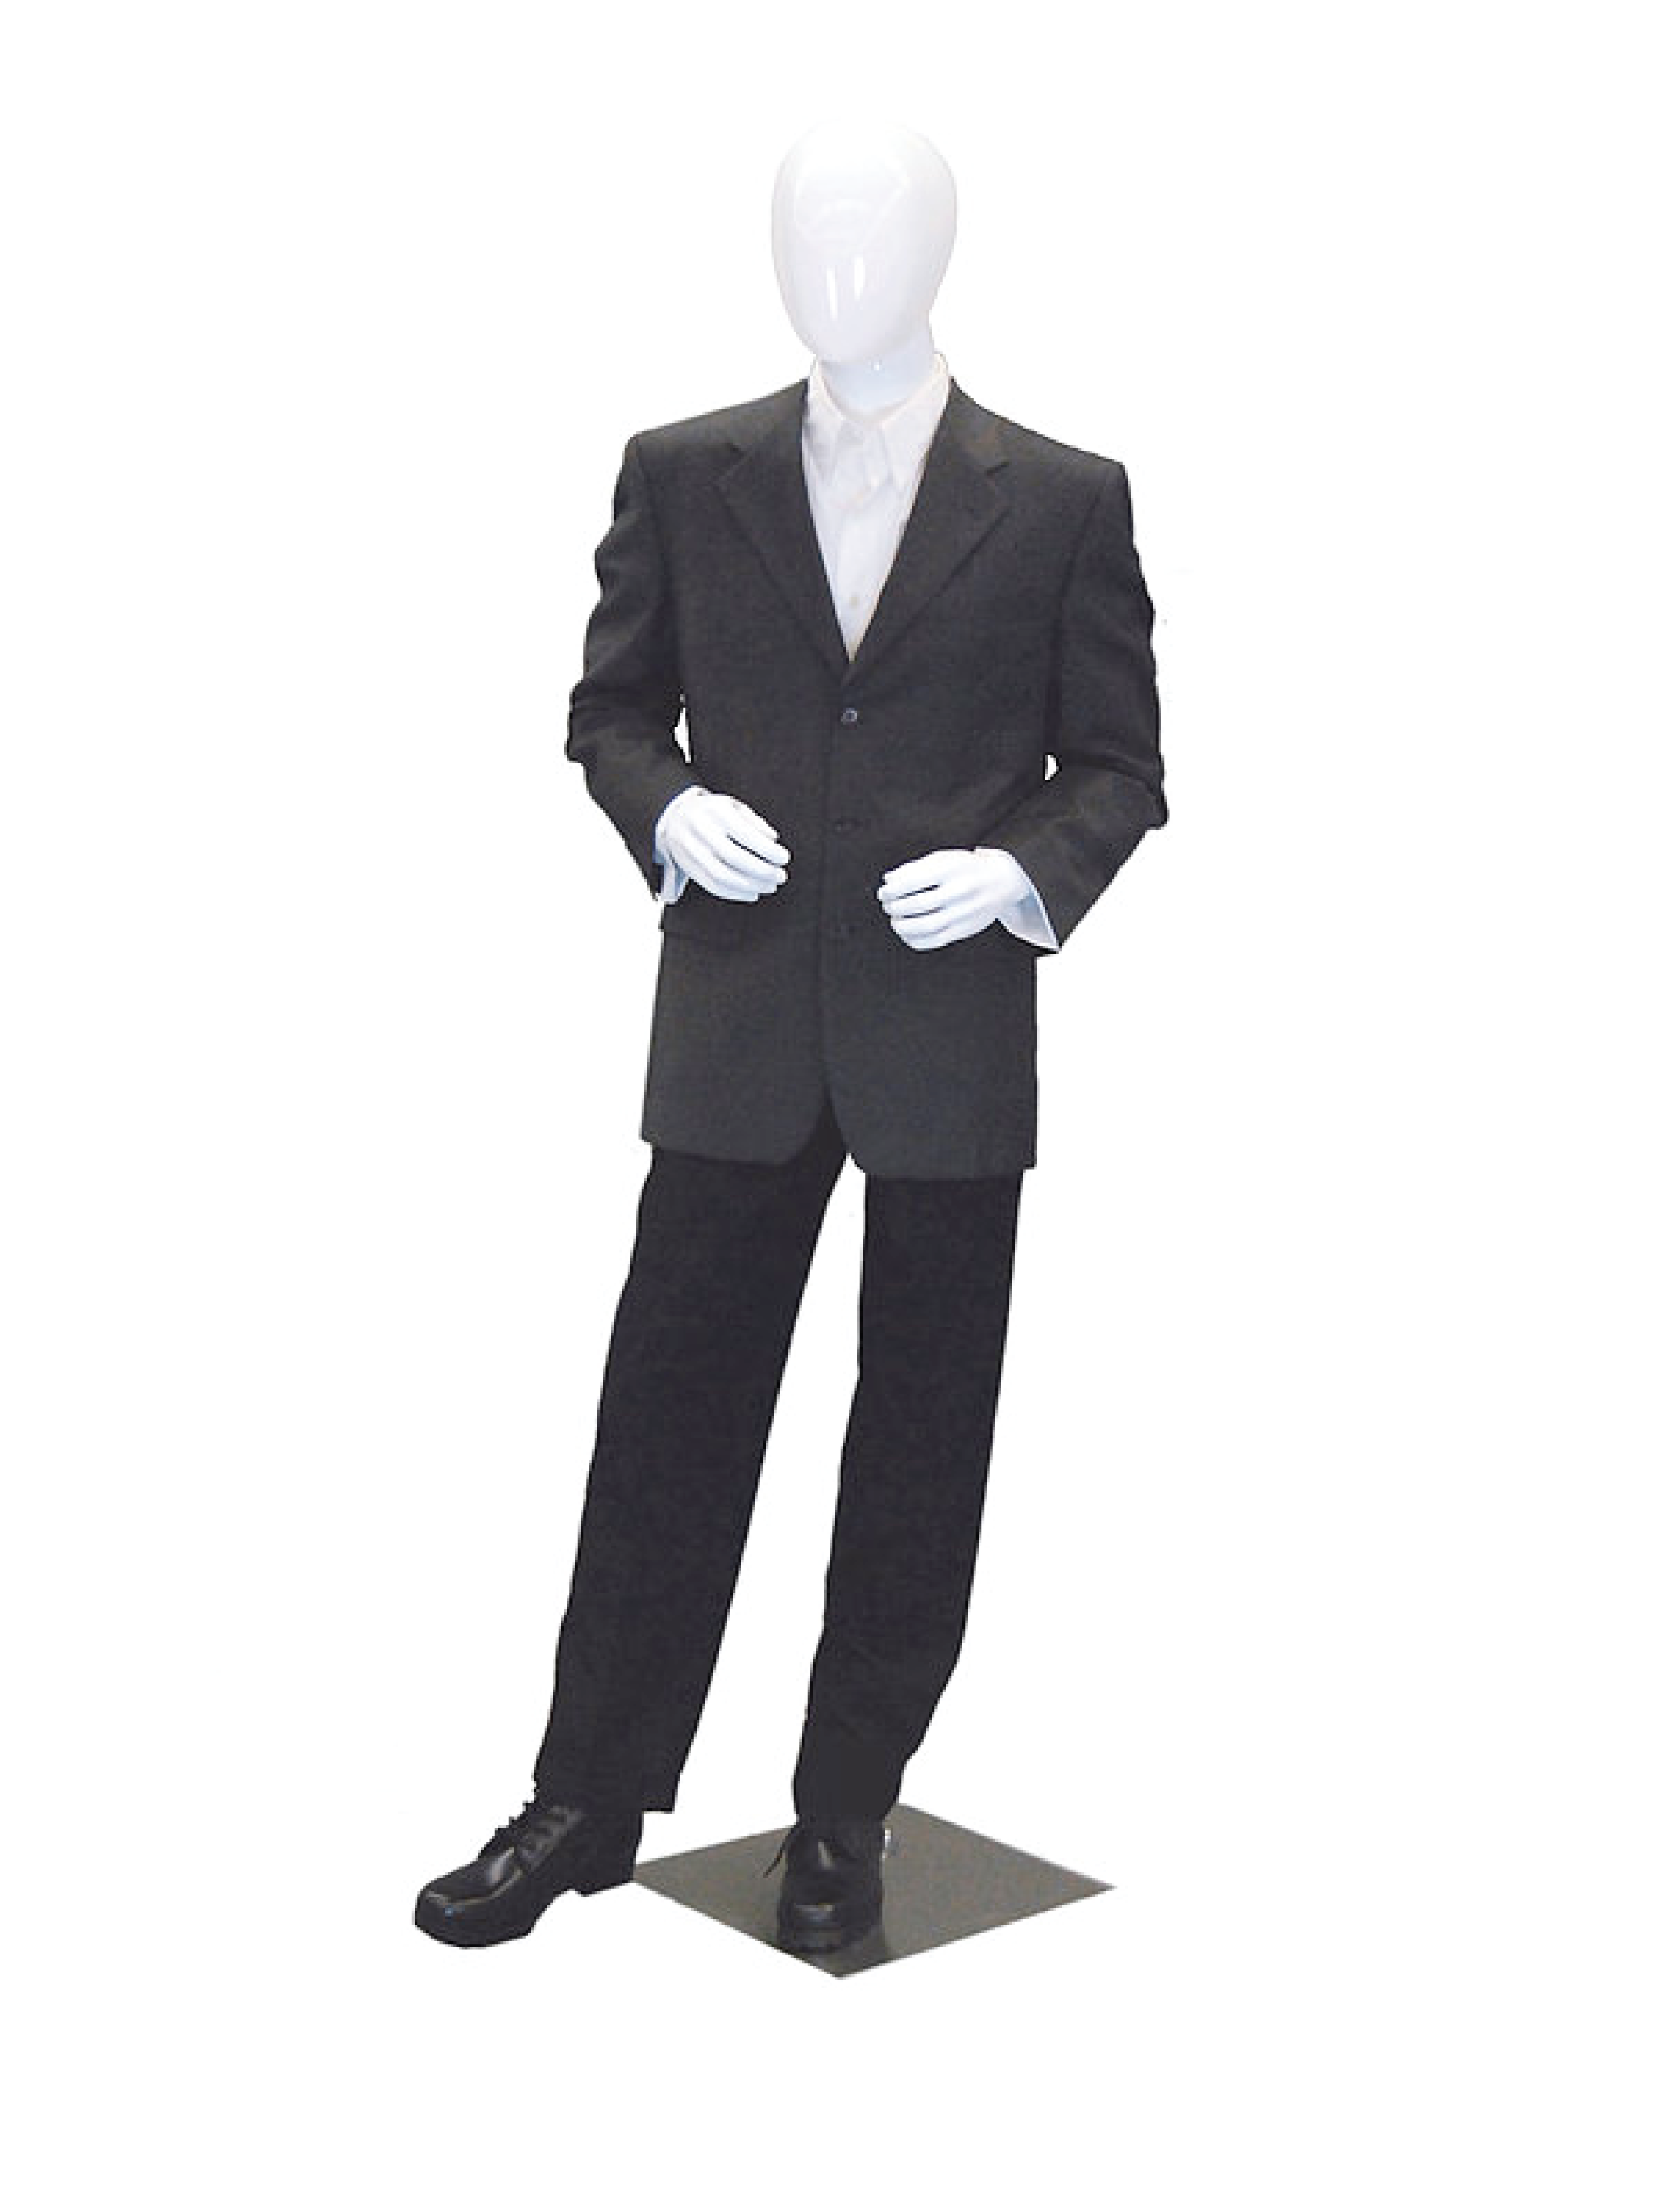 PNG Mannequin - 61443